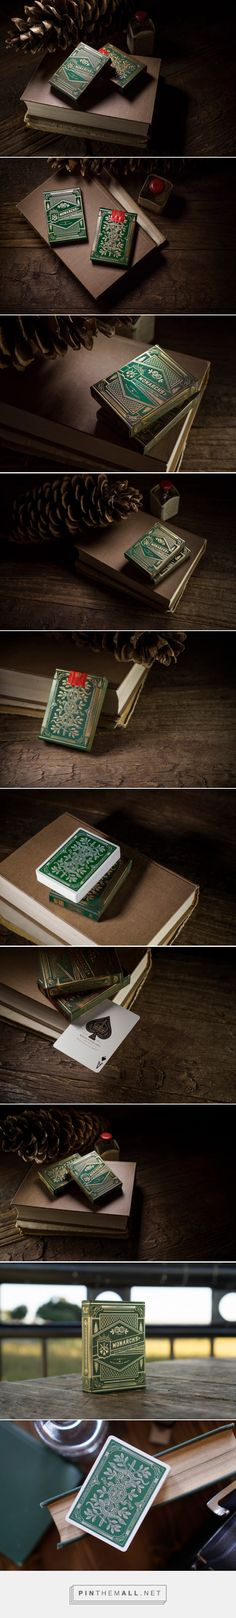 Monarch Playing Cards Green Edition Packaging by theory11​ - http://www.packagingoftheworld.com/2015/10/monarch-playing-cards-green-edition.html